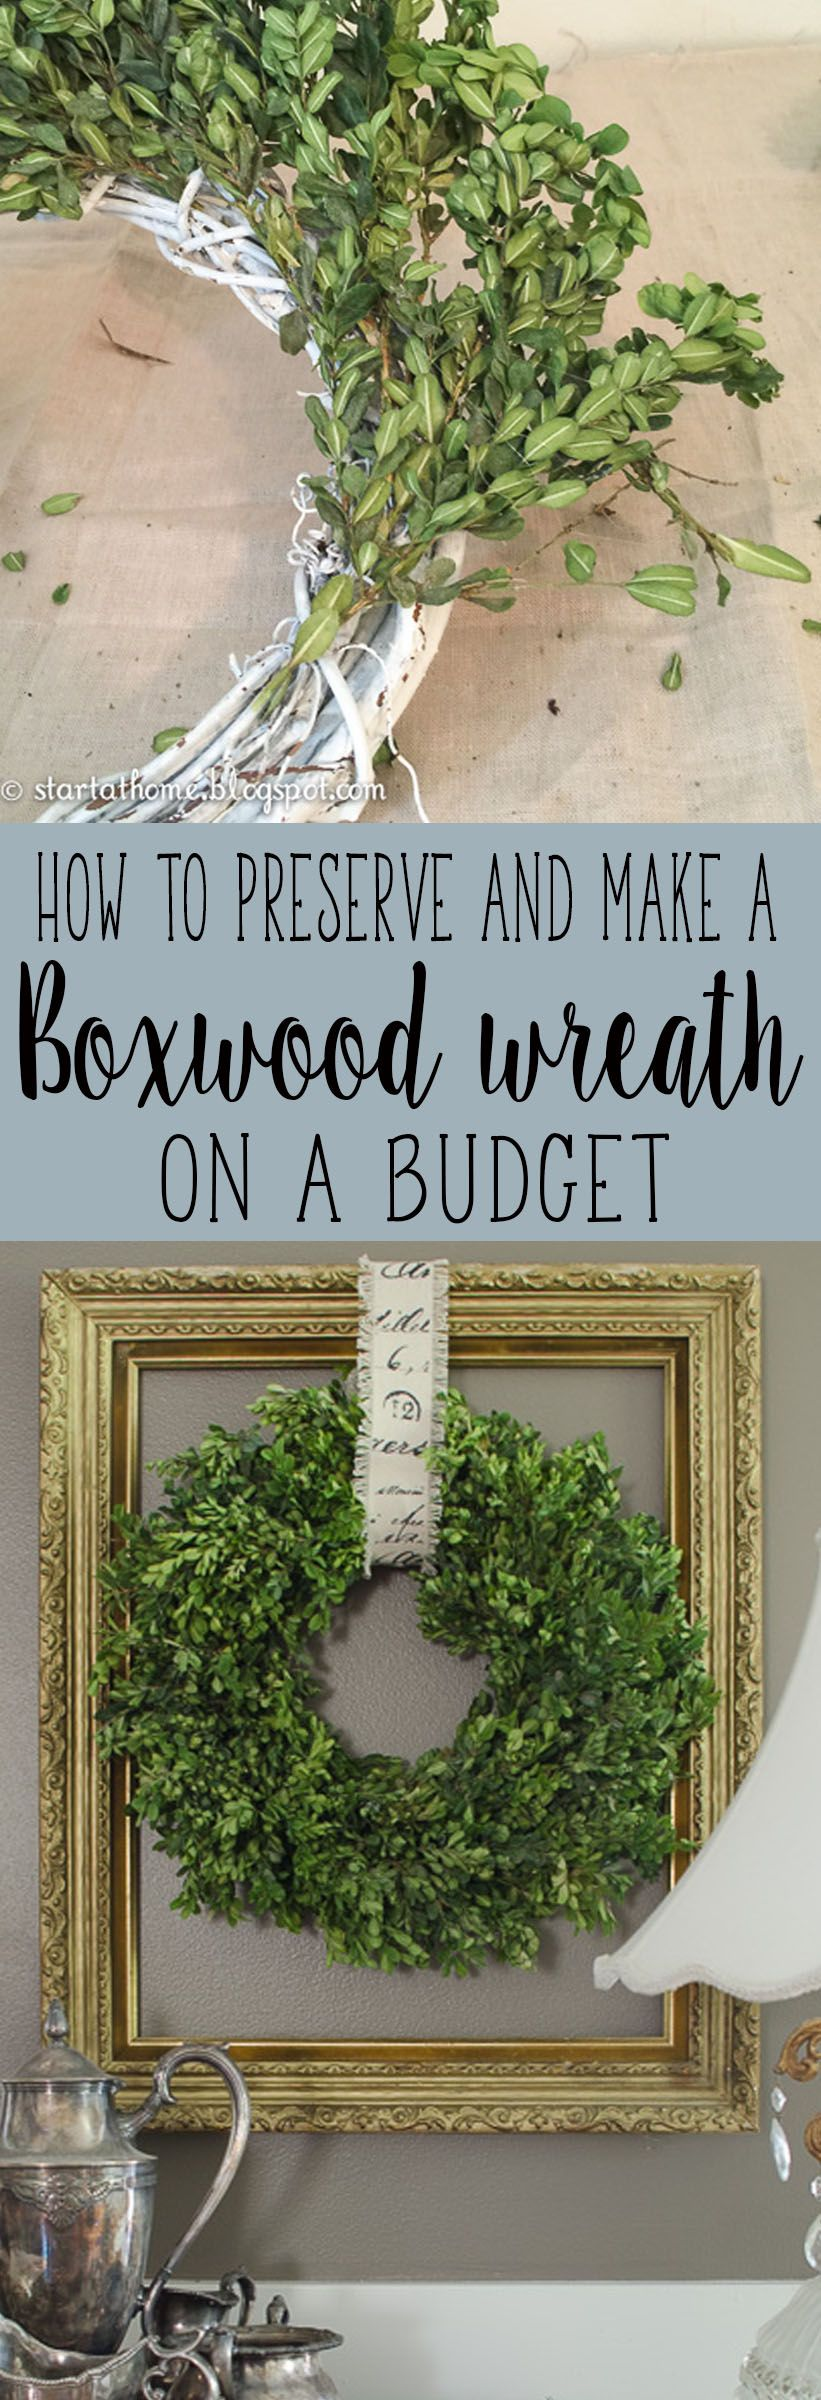 Hometalk diy christmas window decoration - Find This Pin And More On Hometalk Funky Junk Present Bloggers Diy Anything